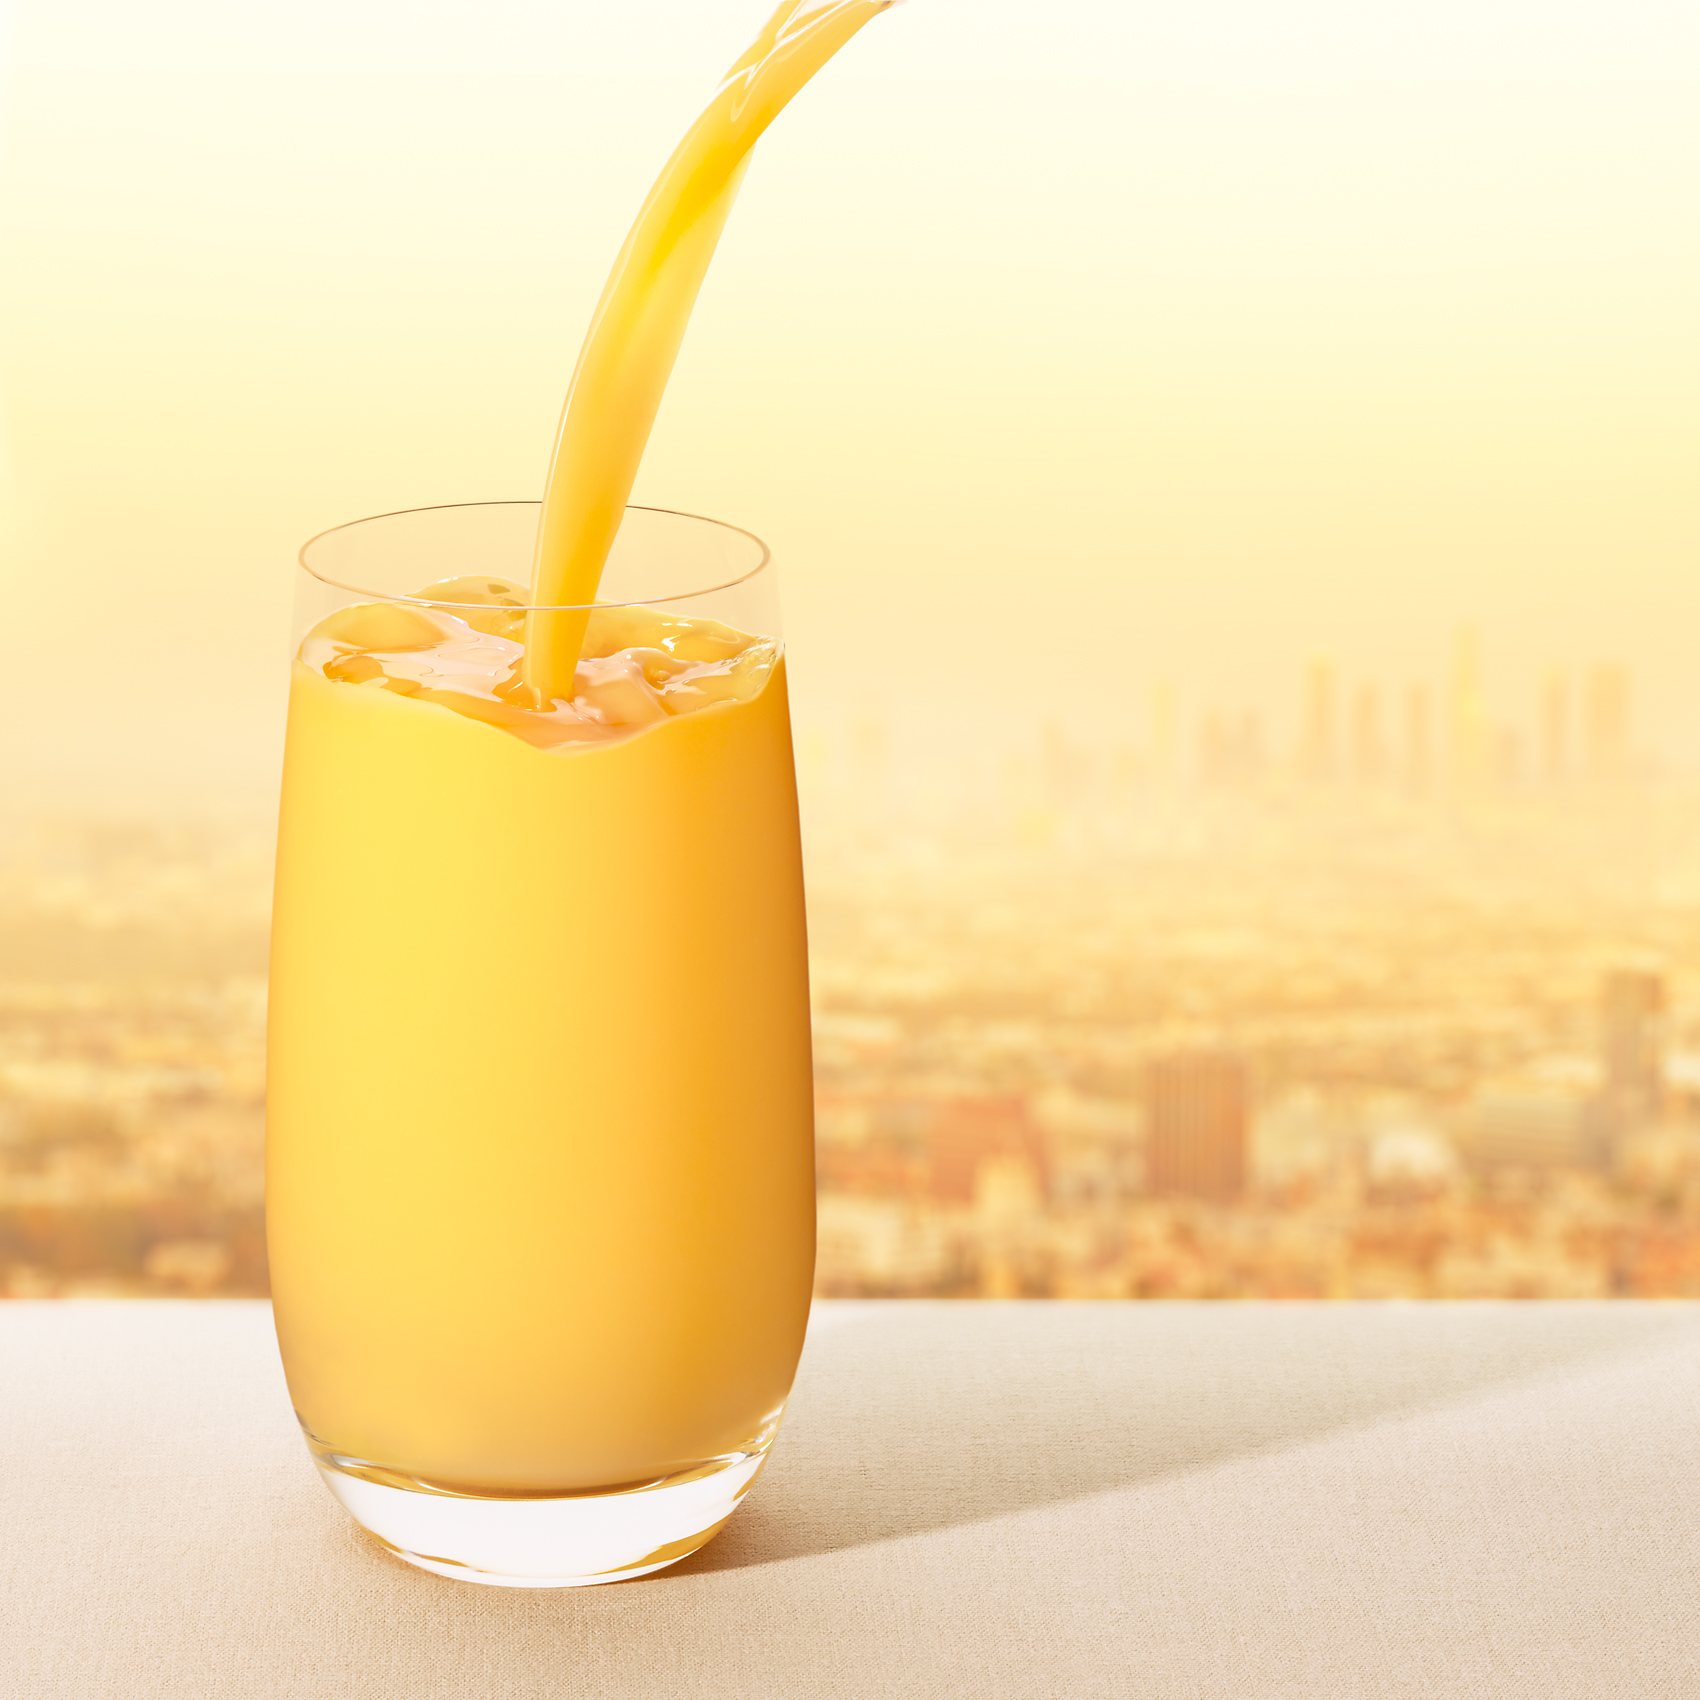 Nick_Rees-Drinks-ORANGE_JUICE